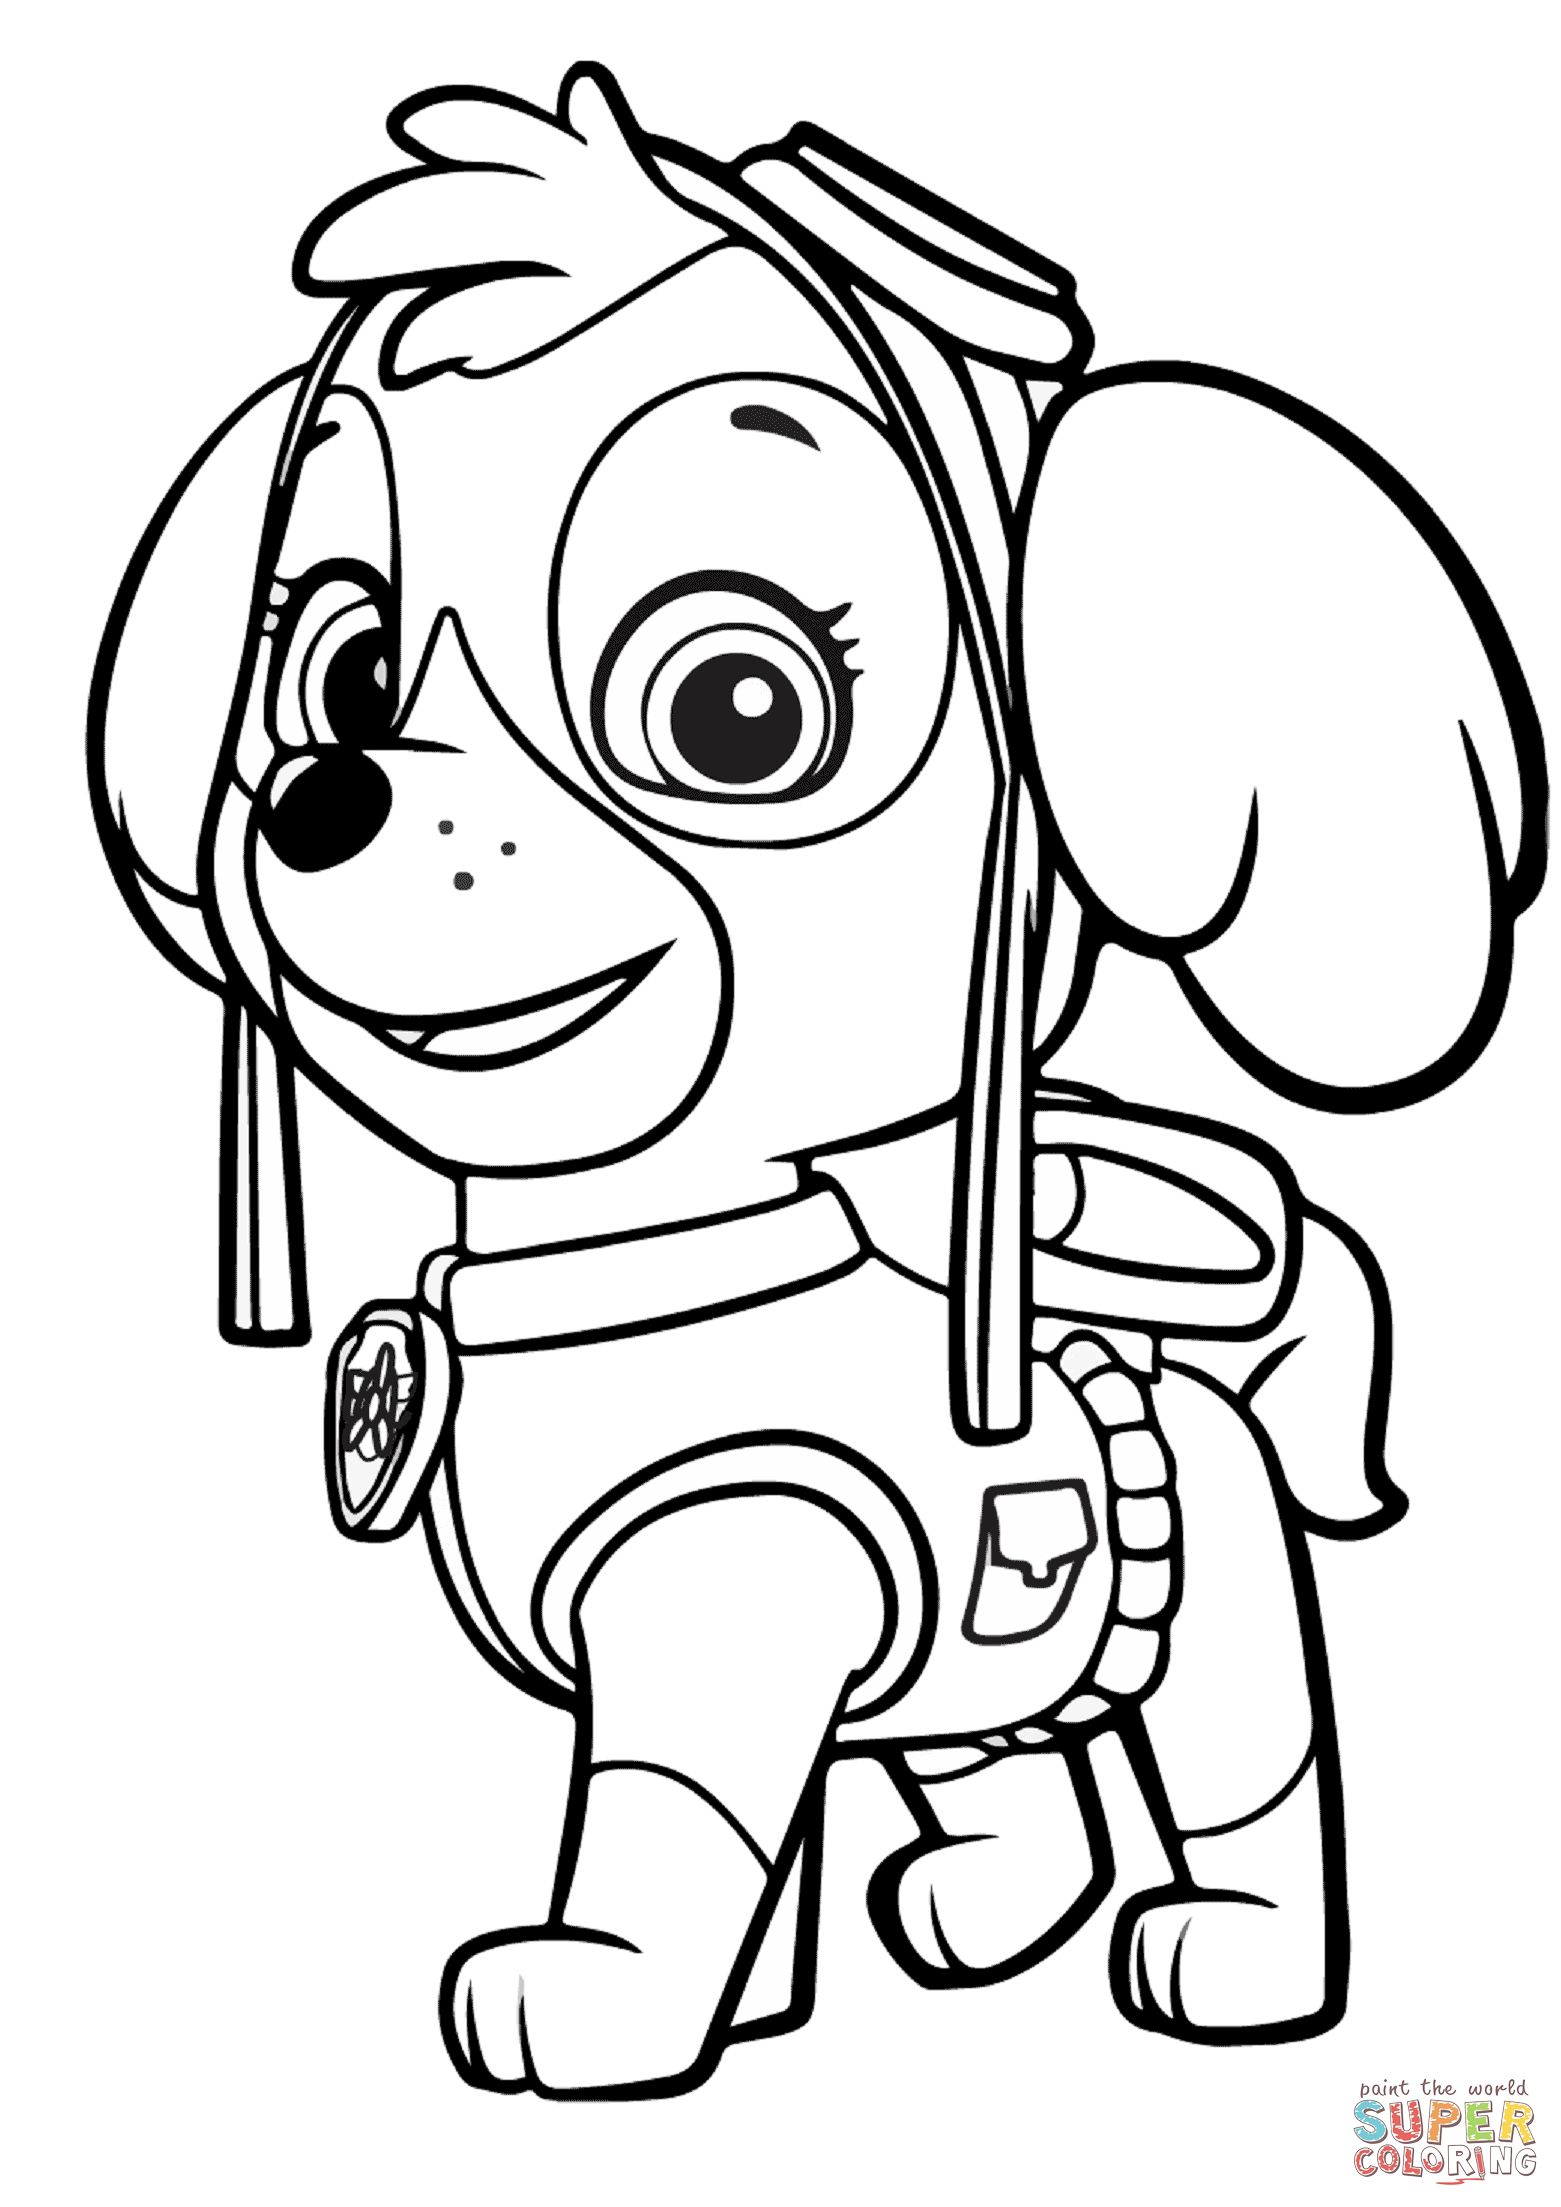 Paw Patrol Coloring Pages Paw Patrol Coloring Pages Fabulous Paw Patrol Everest Coloring Pages Albanysinsanity Com Paw Patrol Coloring Paw Patrol Coloring Pages Kids Printable Coloring Pages